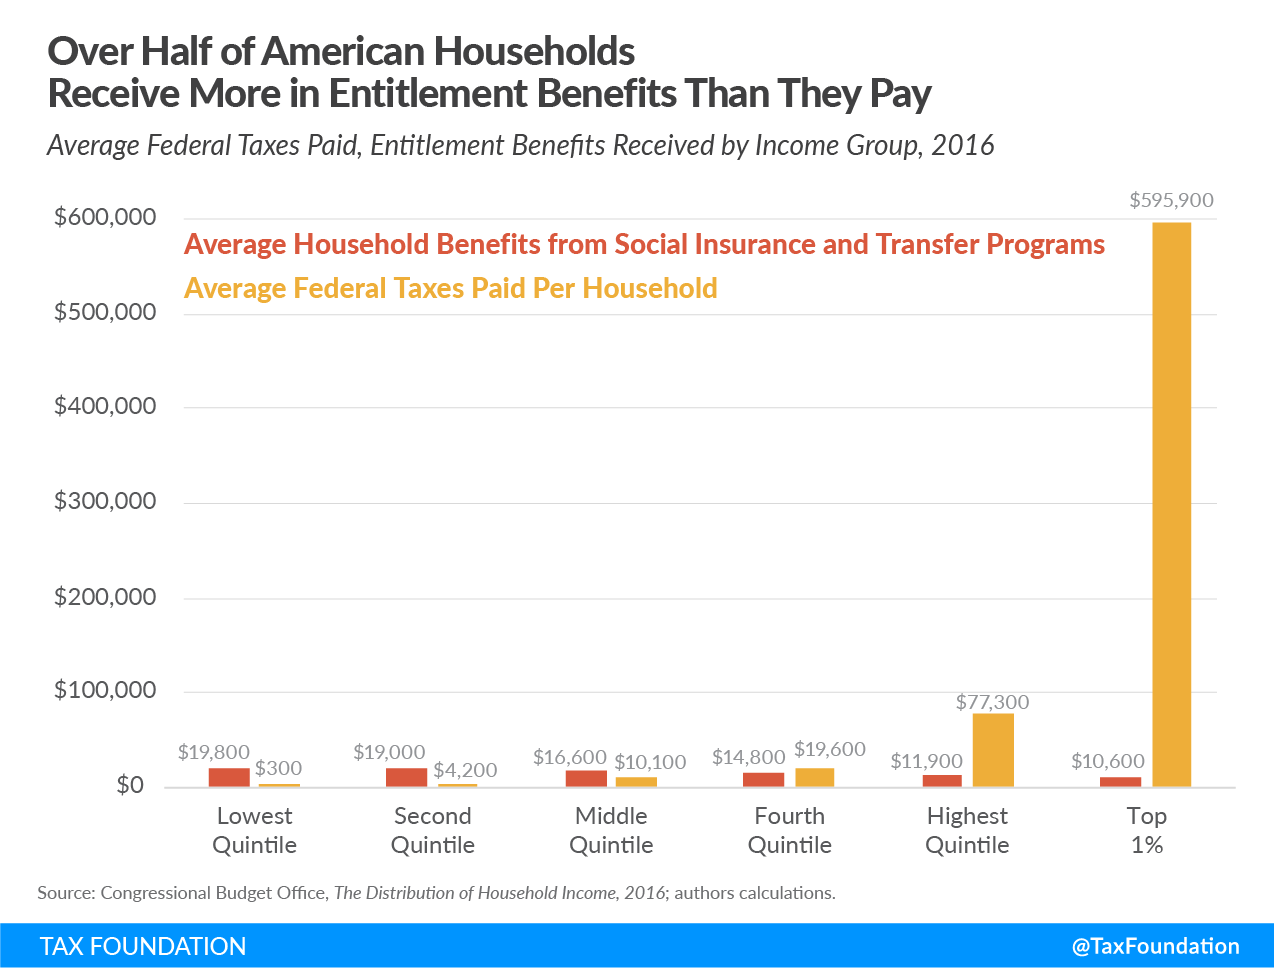 What would income equality look like? Comparing average federal taxes paid to entitlement benefits received by income group, income inequality debate by Elizabeth Warren and Bernie Sanders